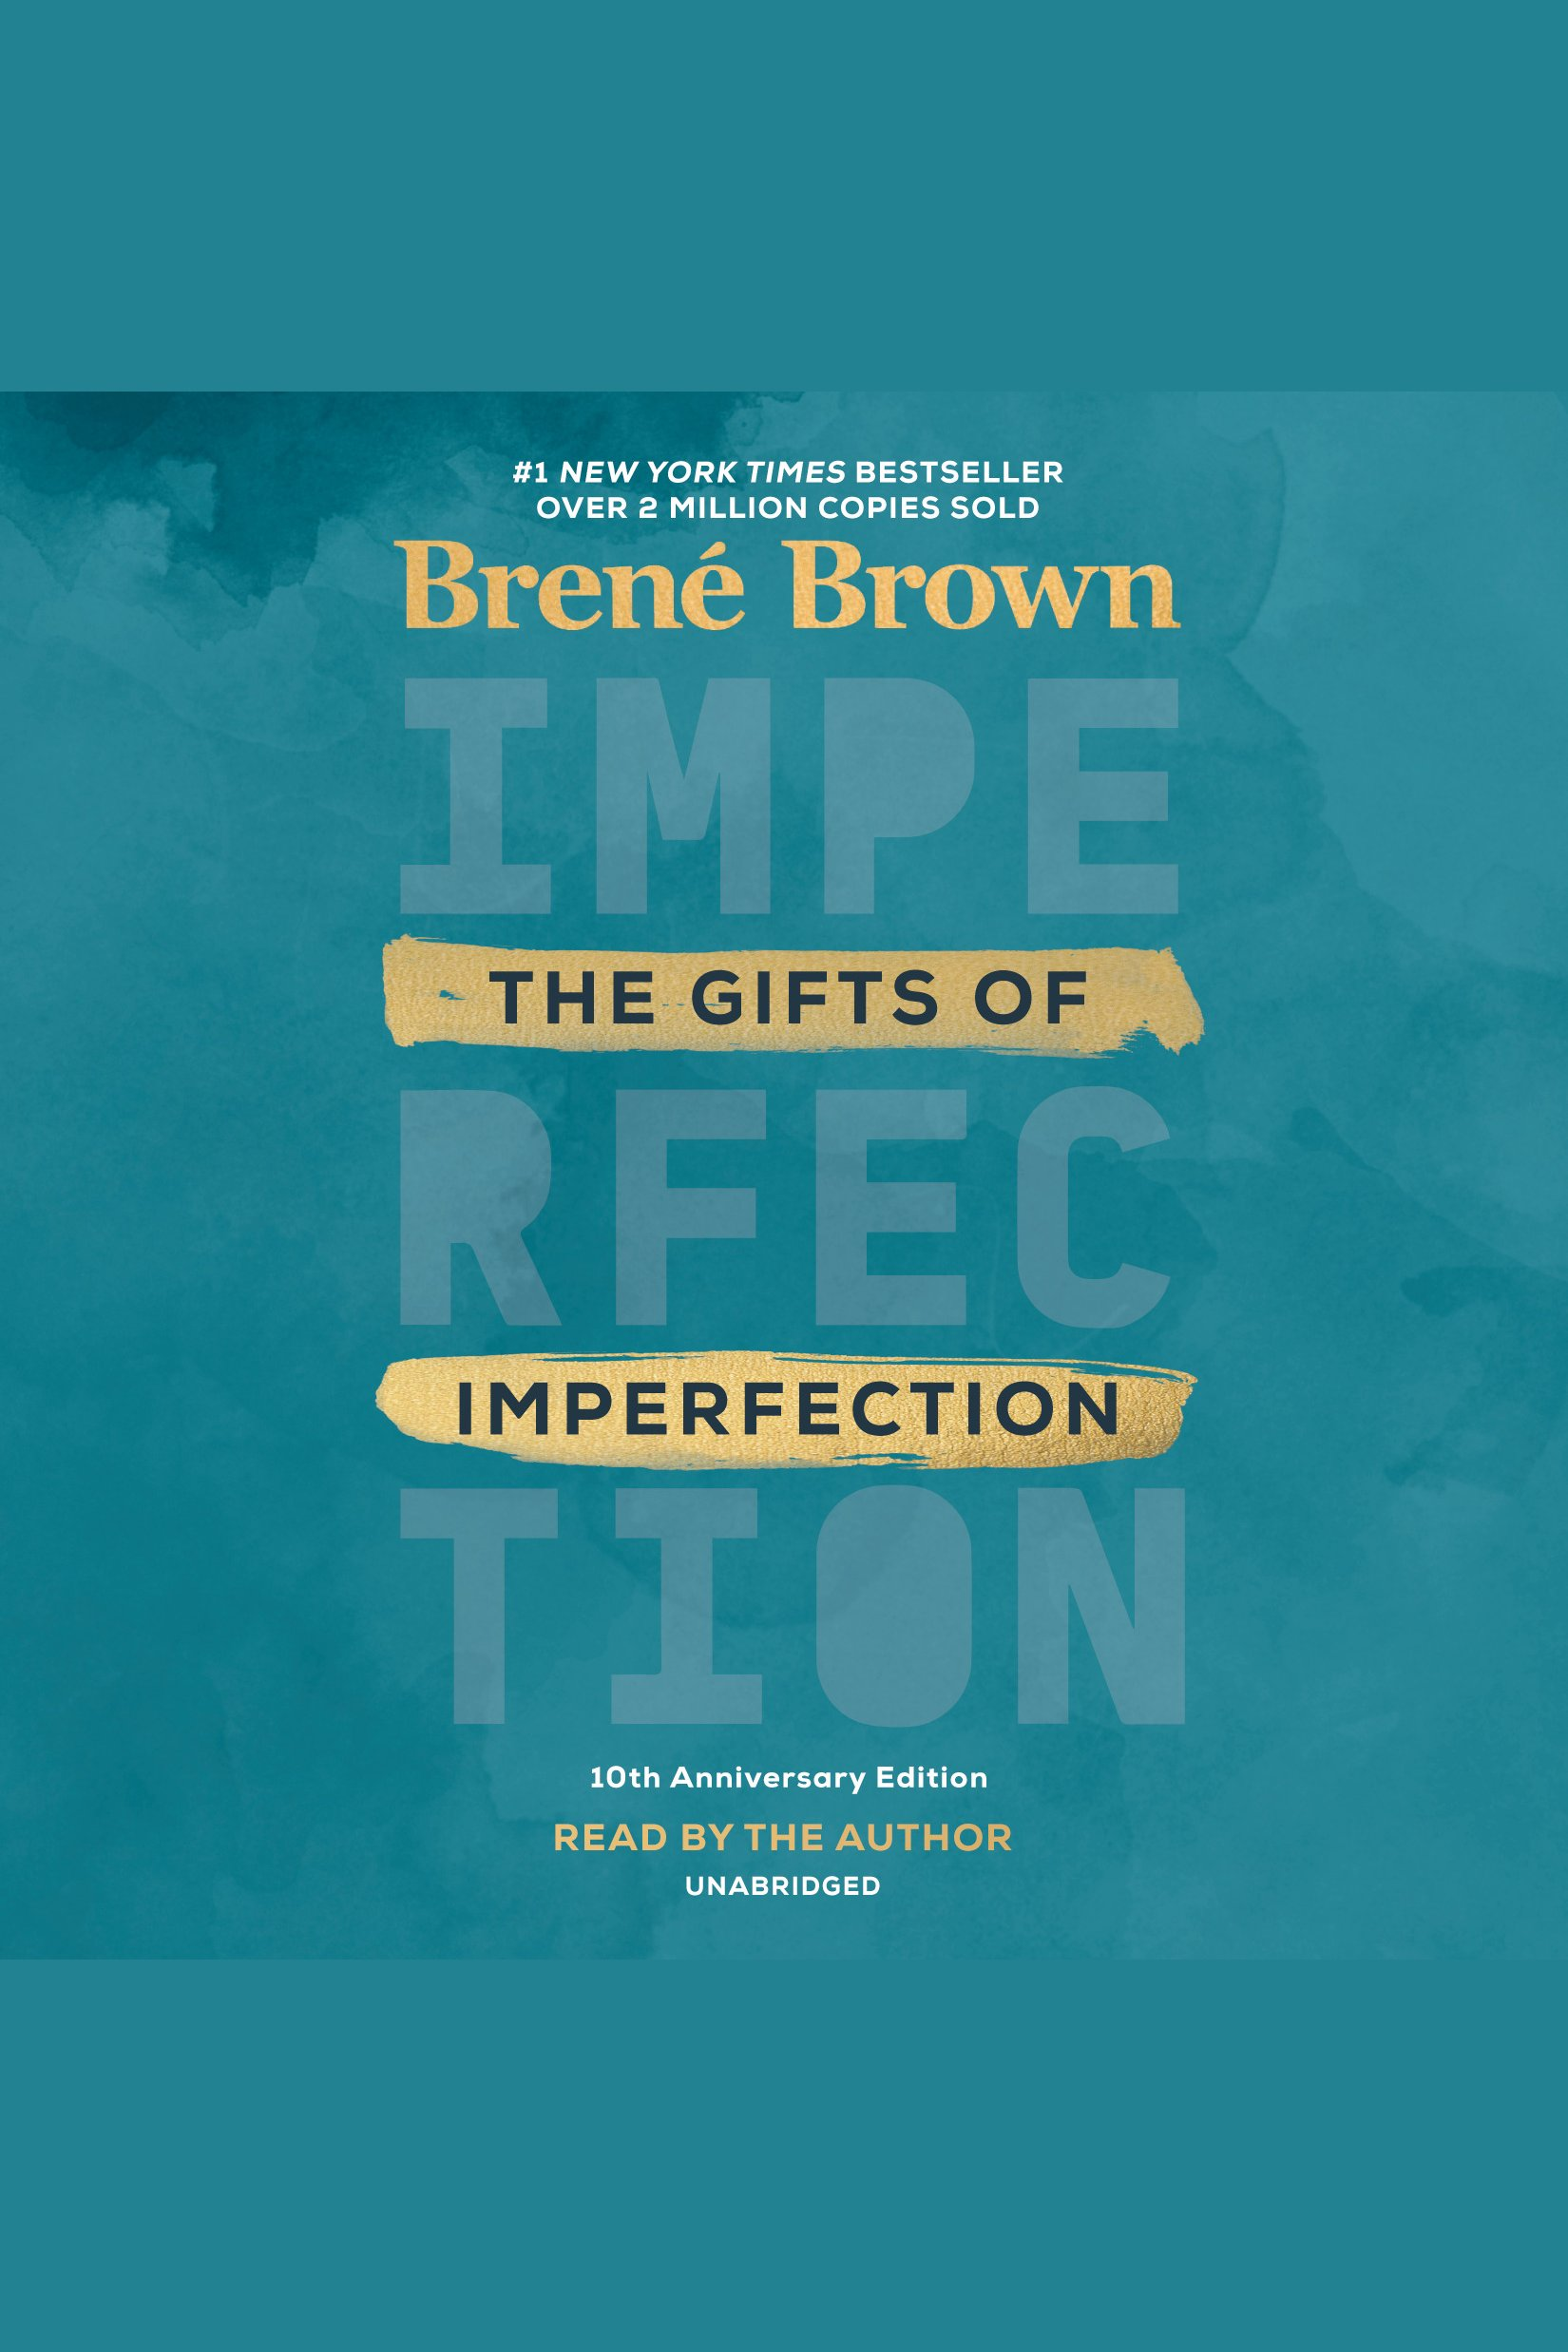 Cover Image of Gifts of Imperfection, The: 10th Anniversary Edition